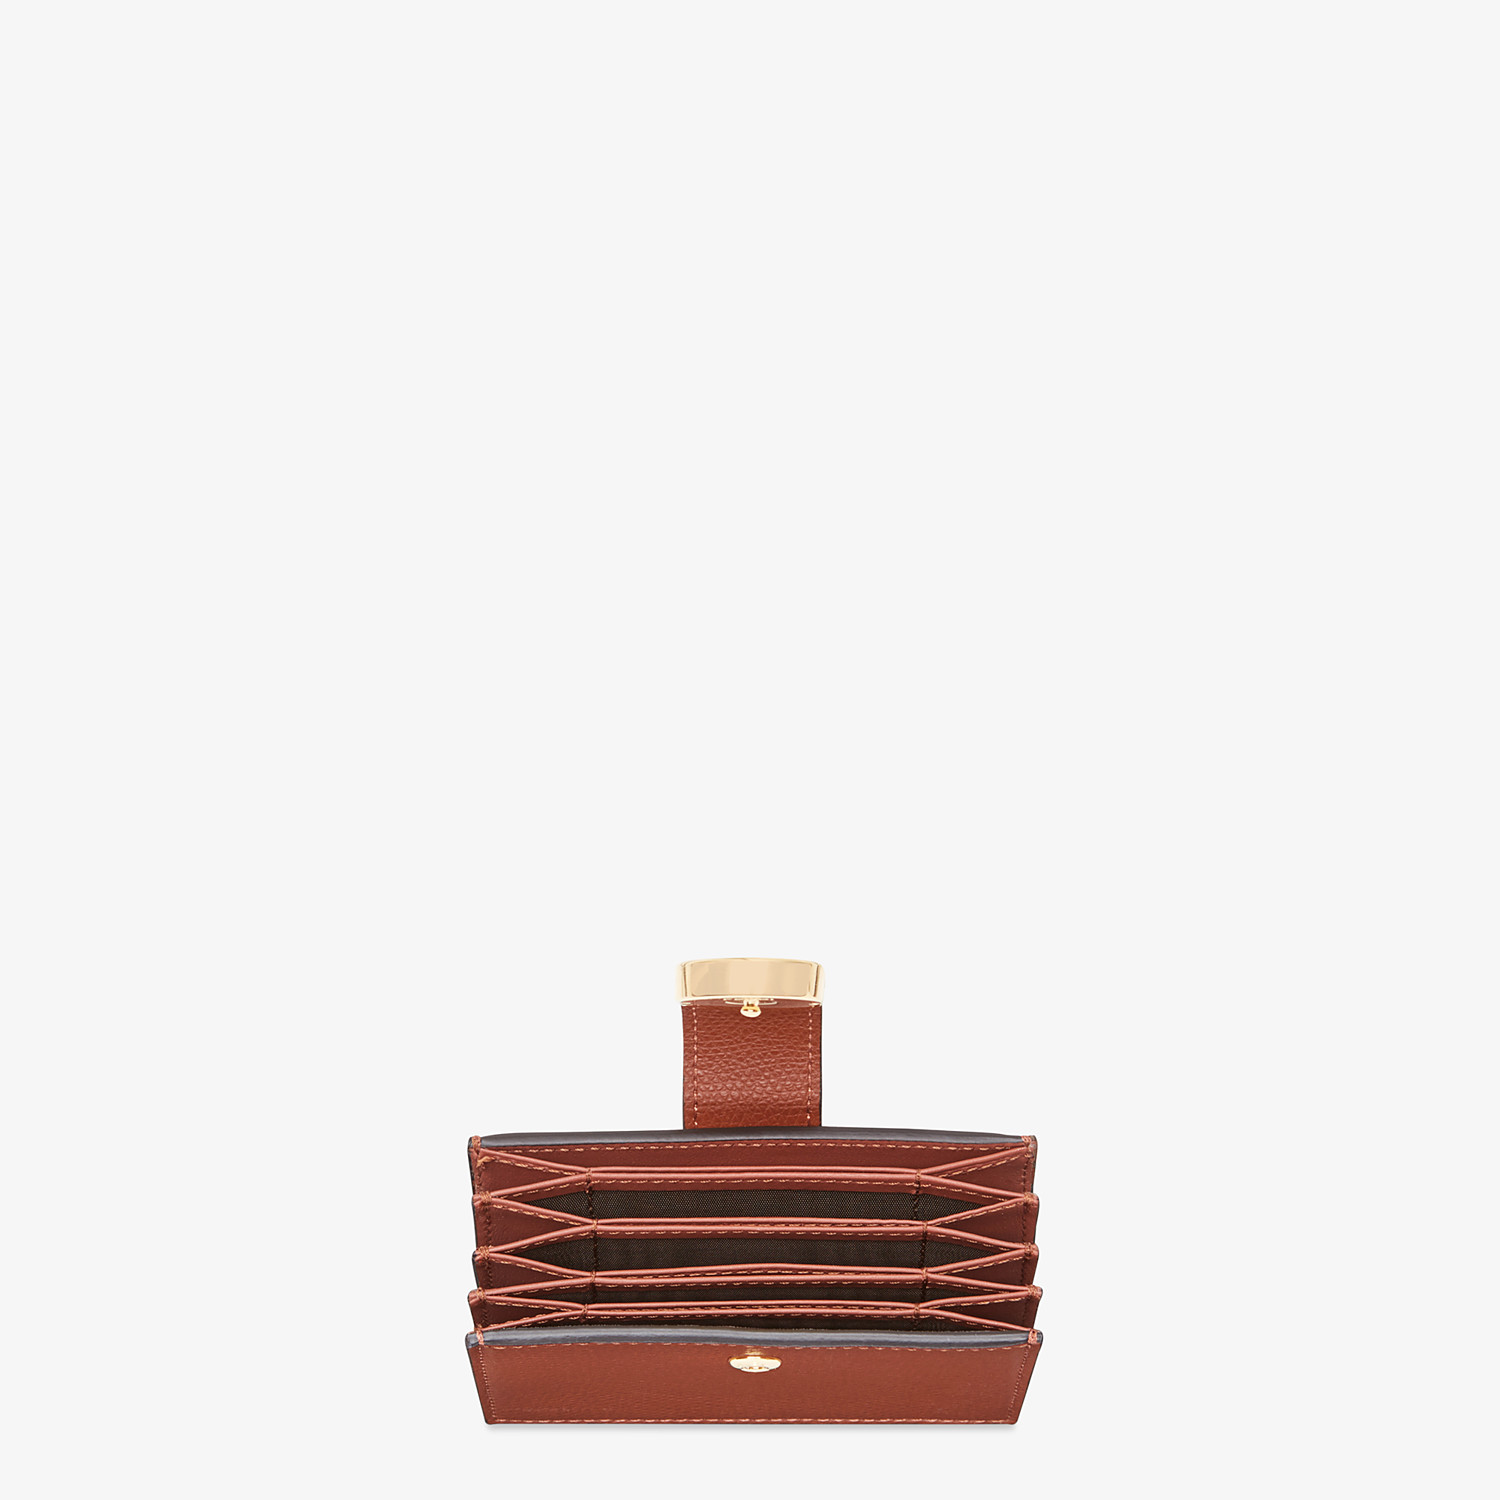 FENDI CARD HOLDER - Brown leather gusseted card holder - view 3 detail